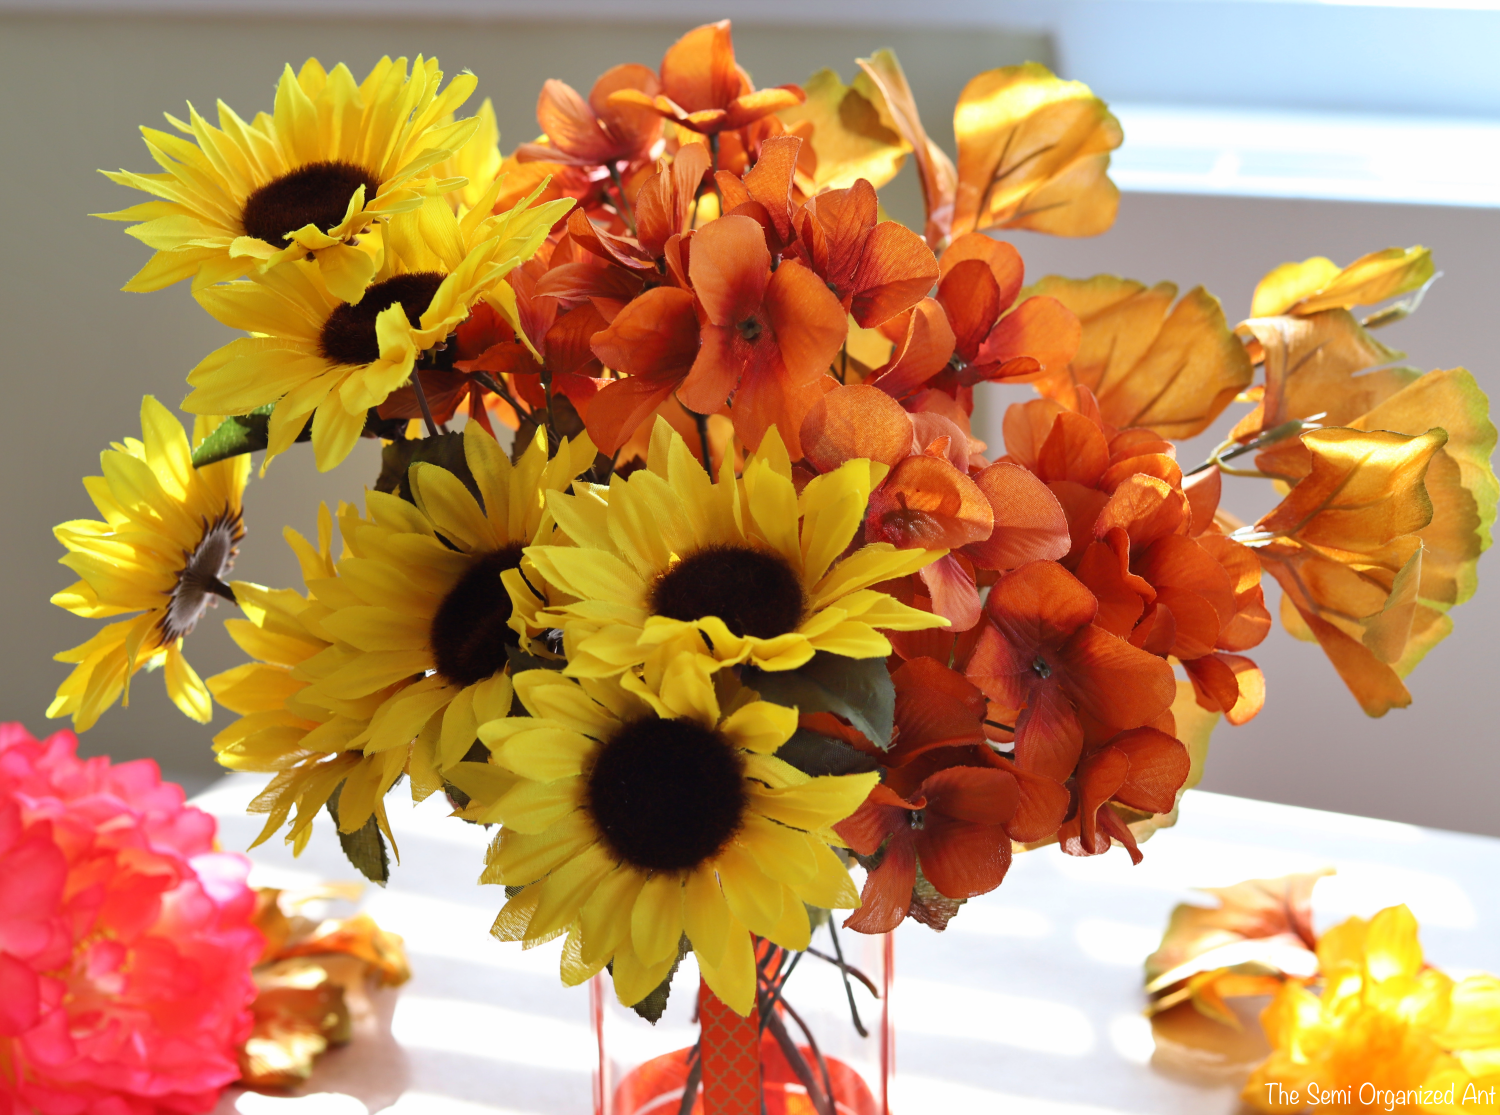 Combining Dollar Tree Flowers with Items I Already Have for the Perfect Fall Centerpiece -The Semi Organized Ant